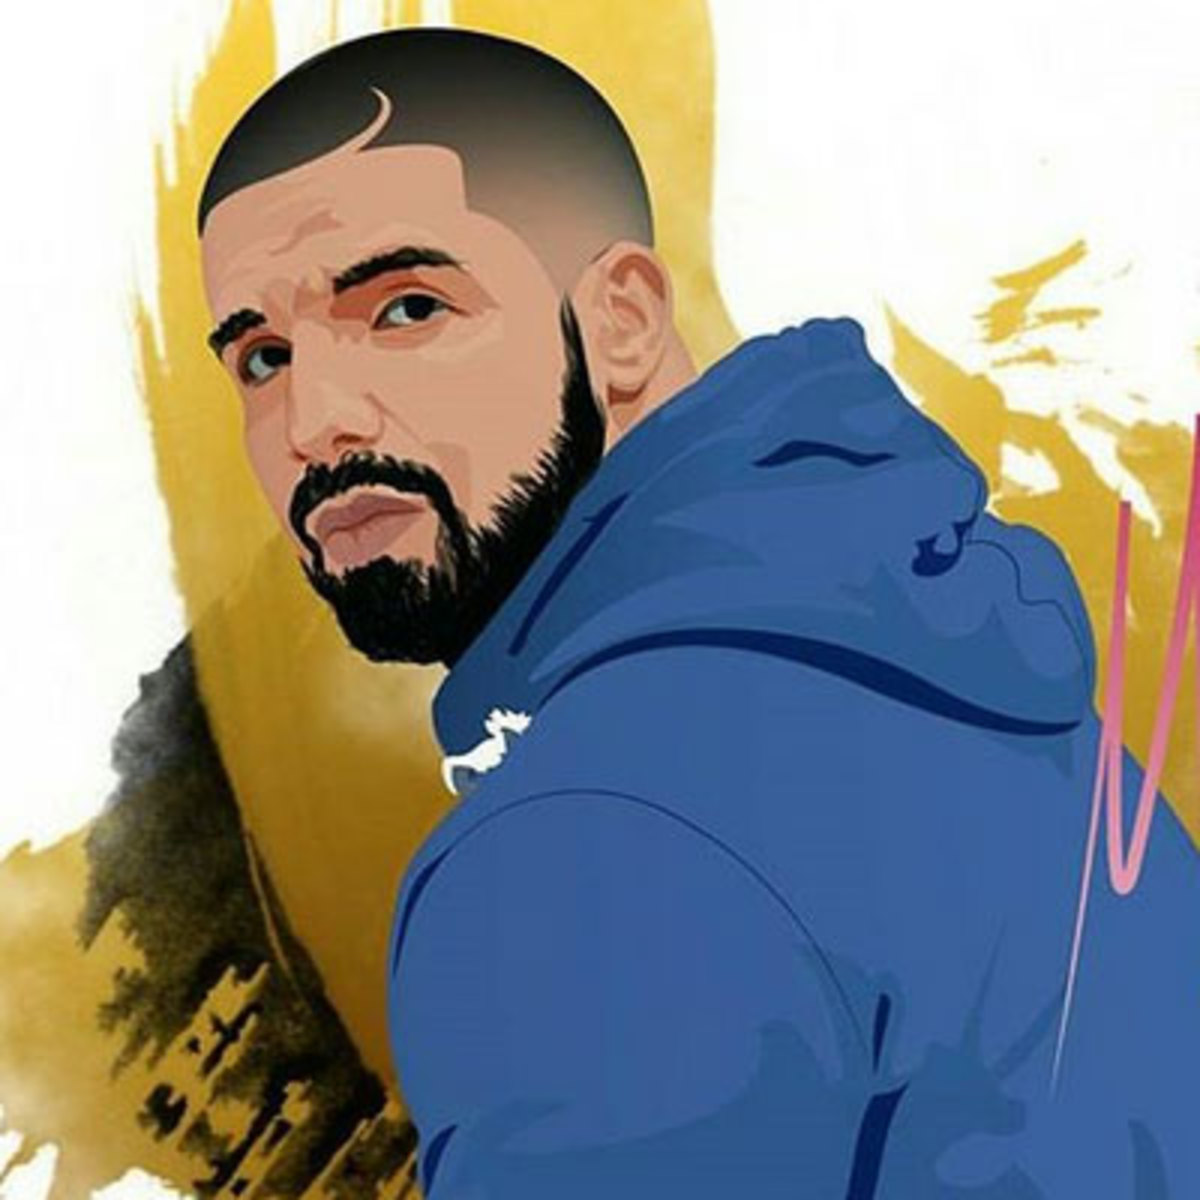 drake-six-held-back.jpg